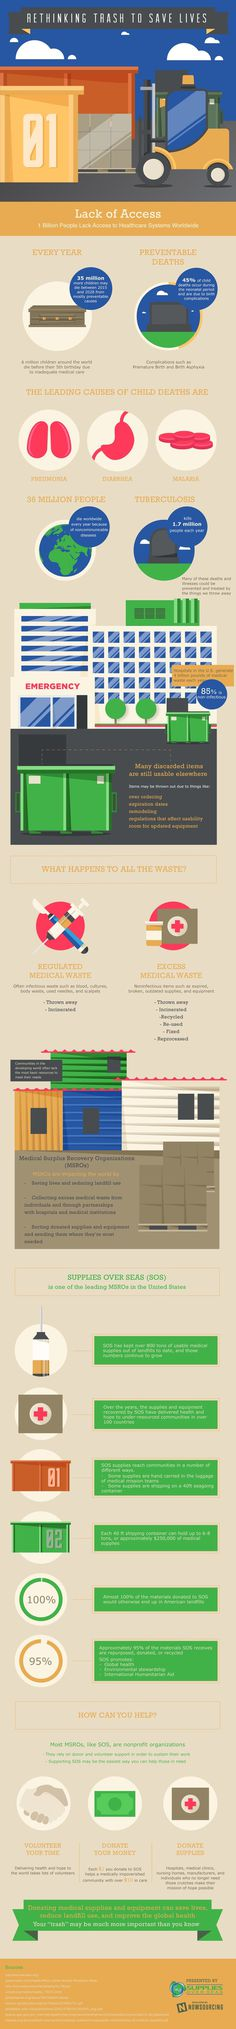 Learn how medical supply recovery operations can save lives from this infographic.Trash can save lives! #msro #medical supply recovery opera